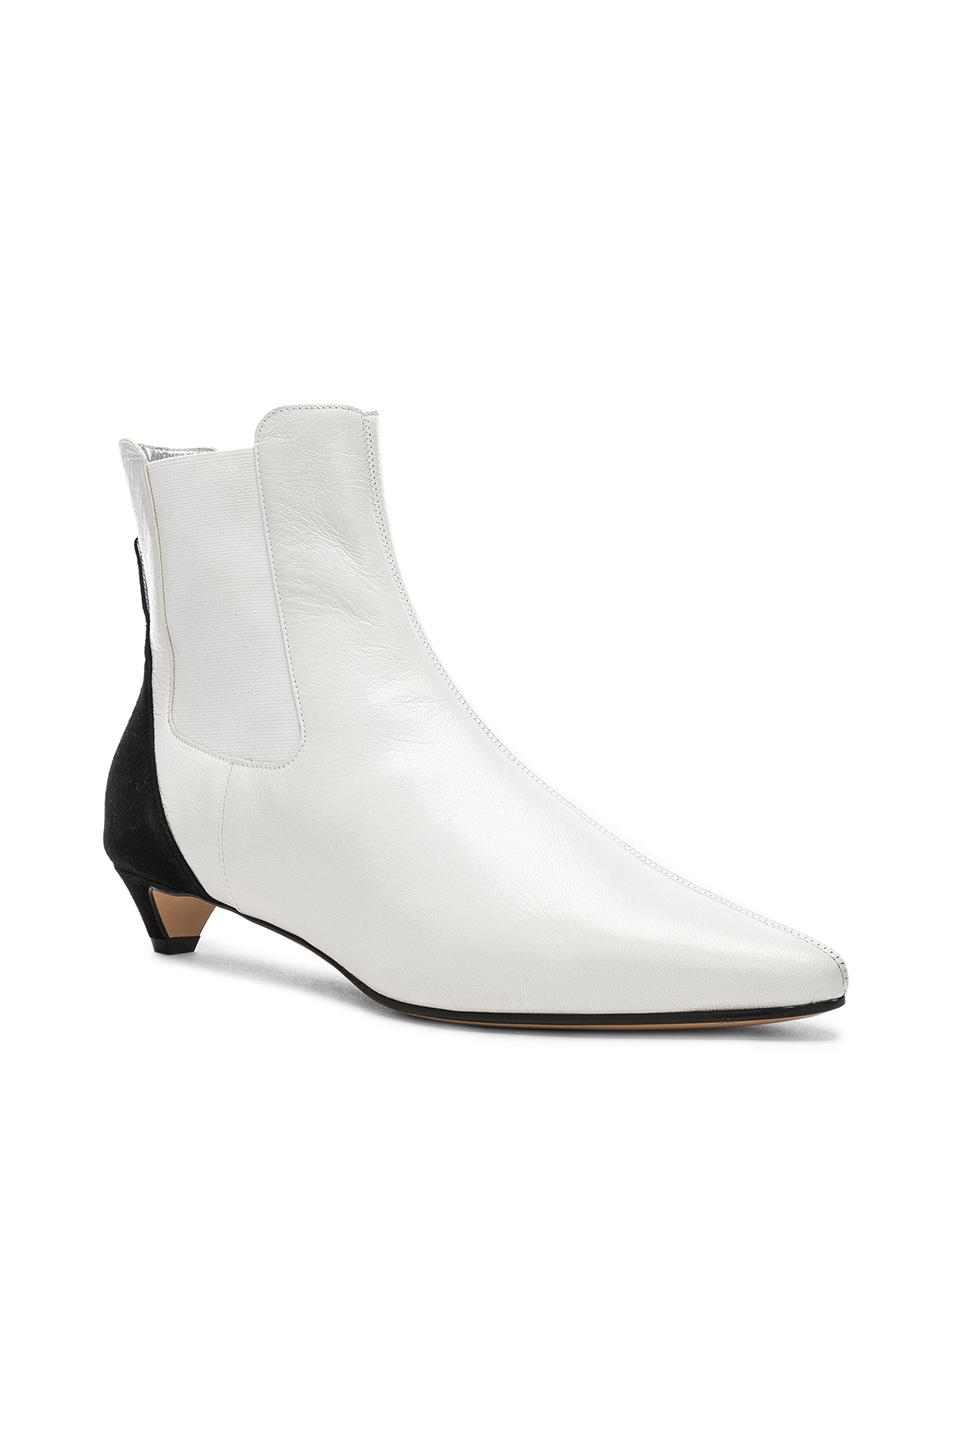 Image 2 of Givenchy GV3 Chelsea Ankle Boots in White & Black